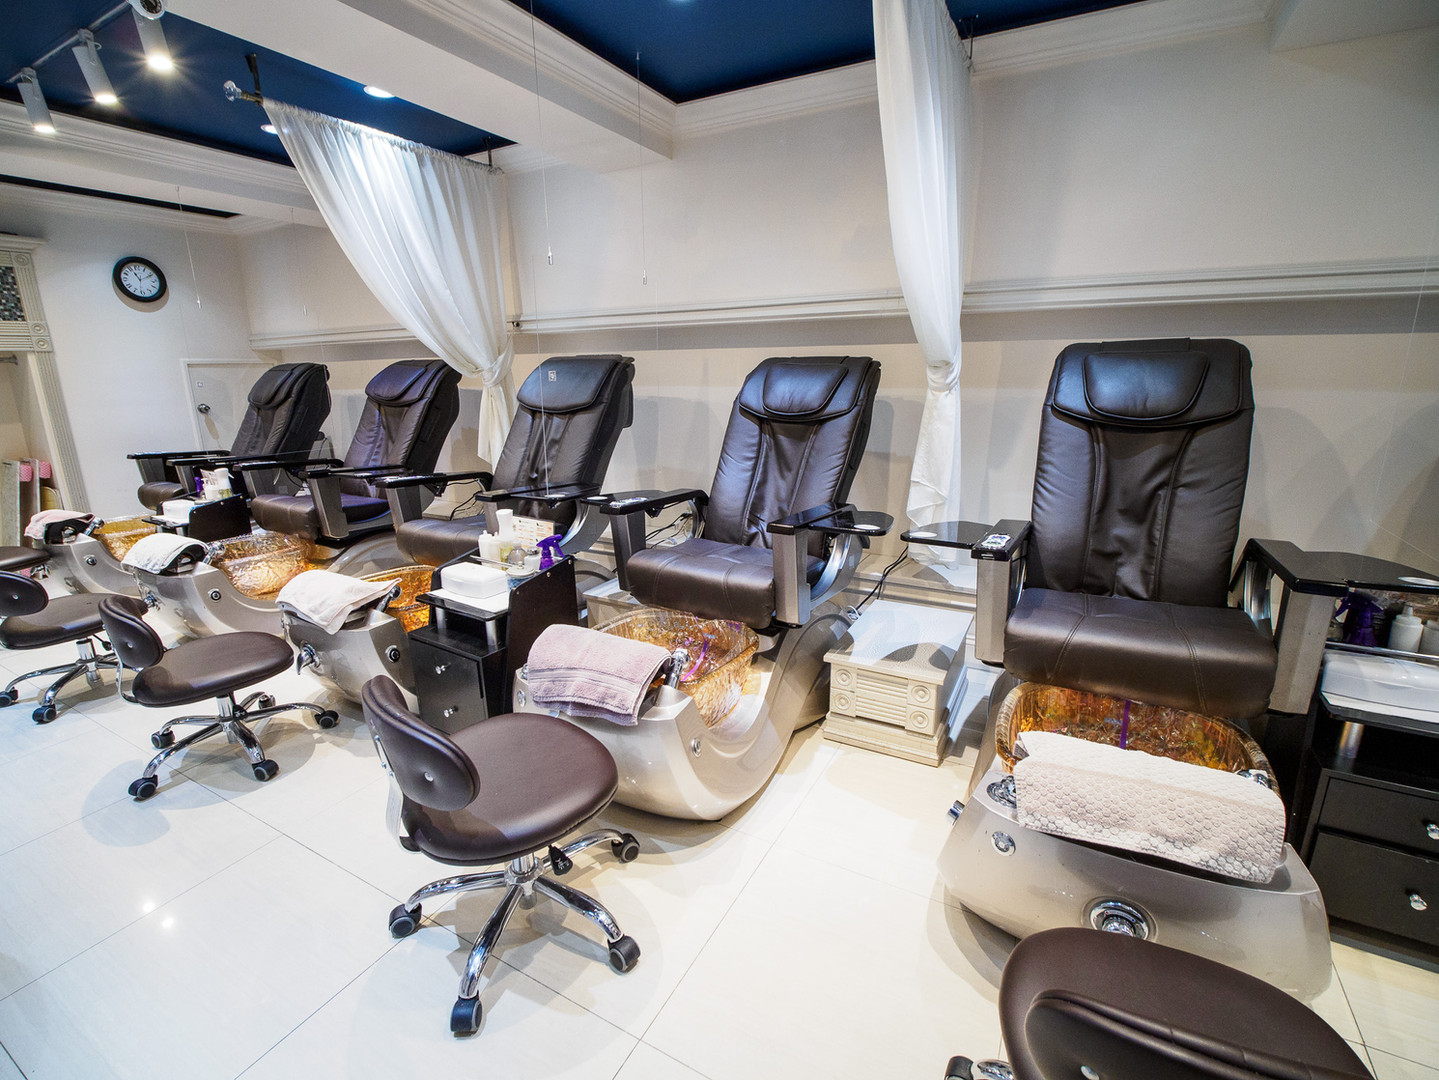 Greenwich Pedicure Chairs with Partitions